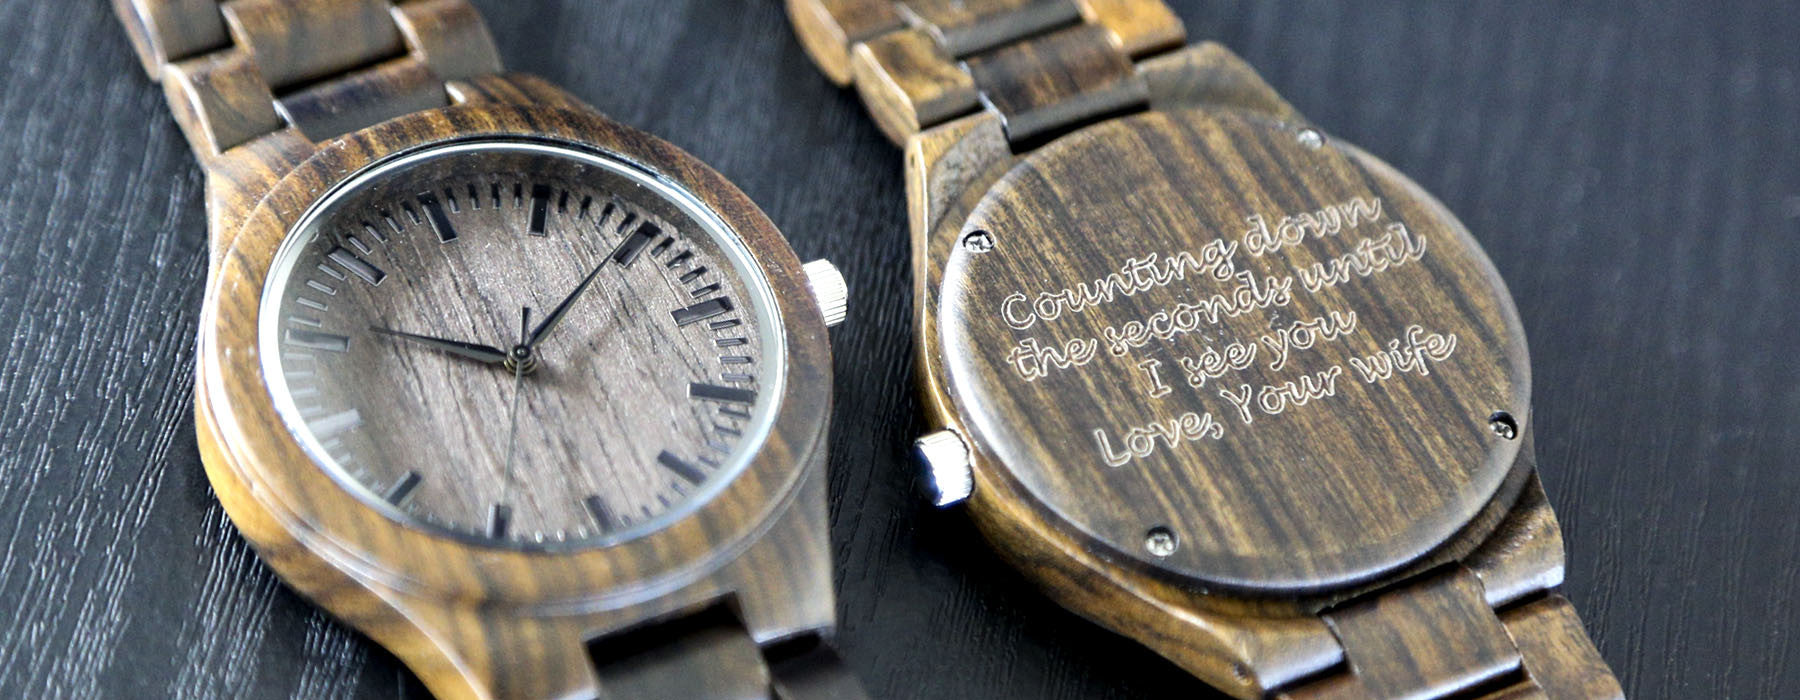 build nixon watches en landing page accessories image custom from watch your us own and premium by